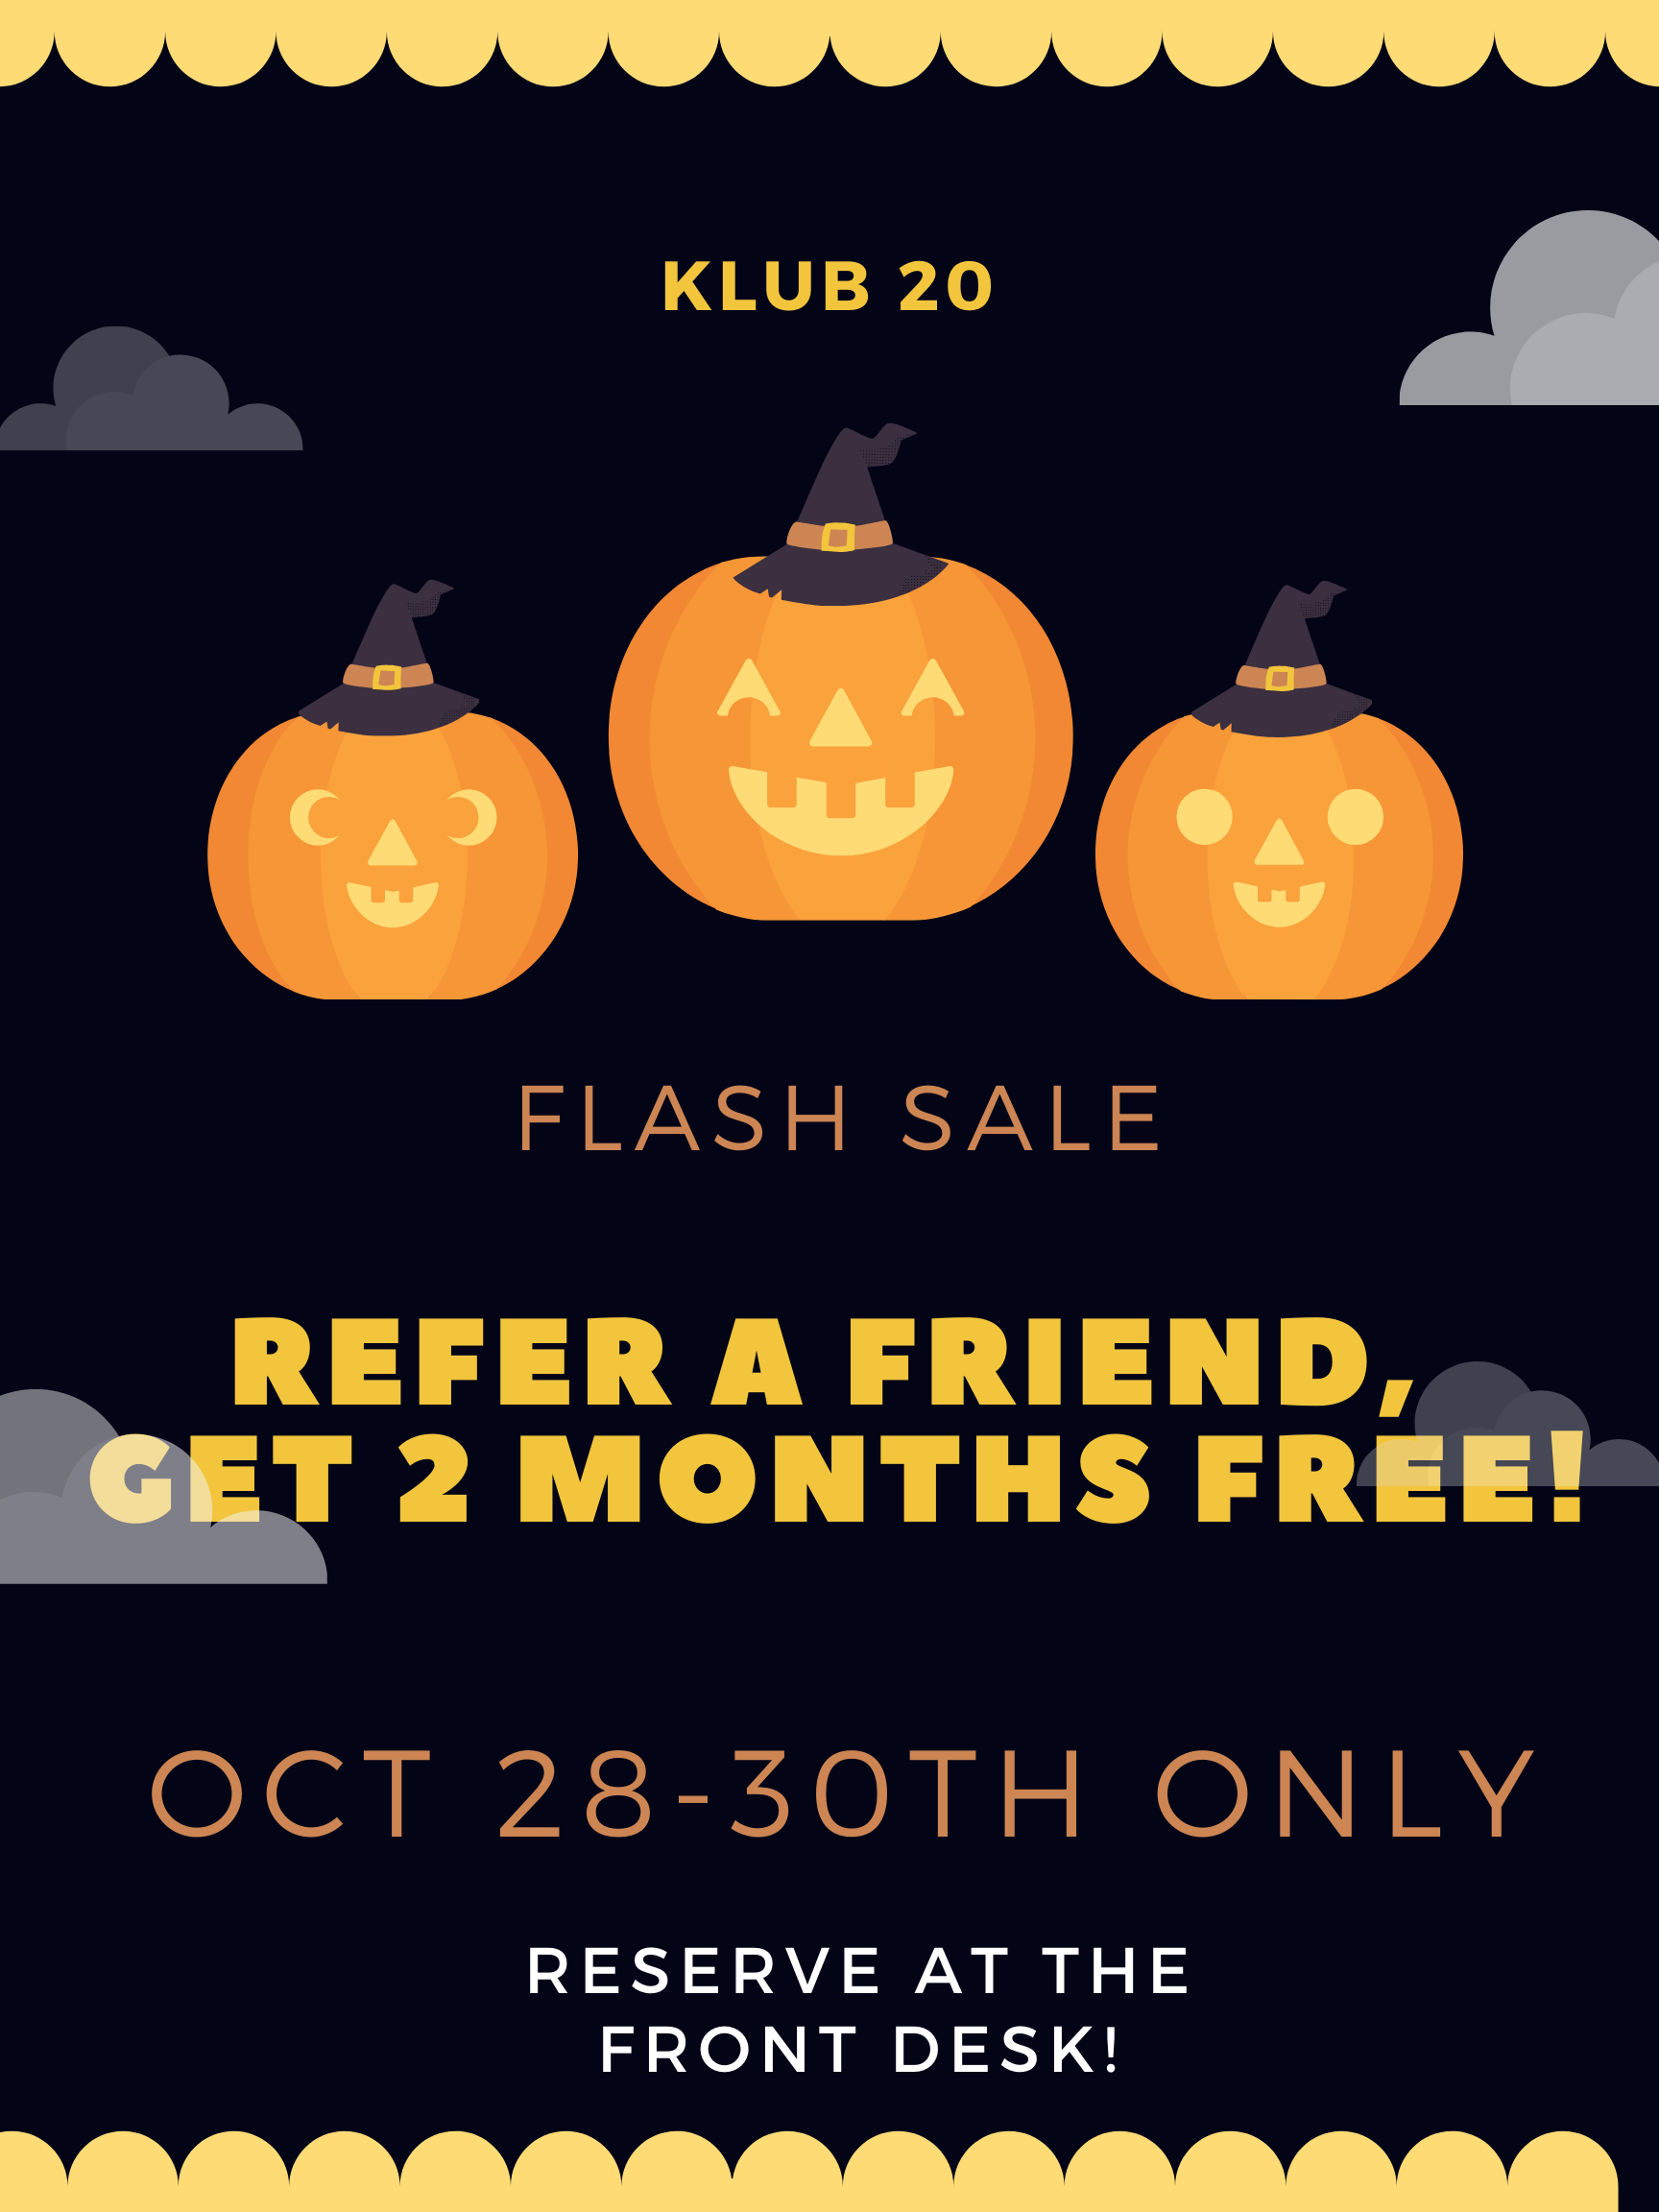 FLASH SALE OCT REFER A FRIEND.png